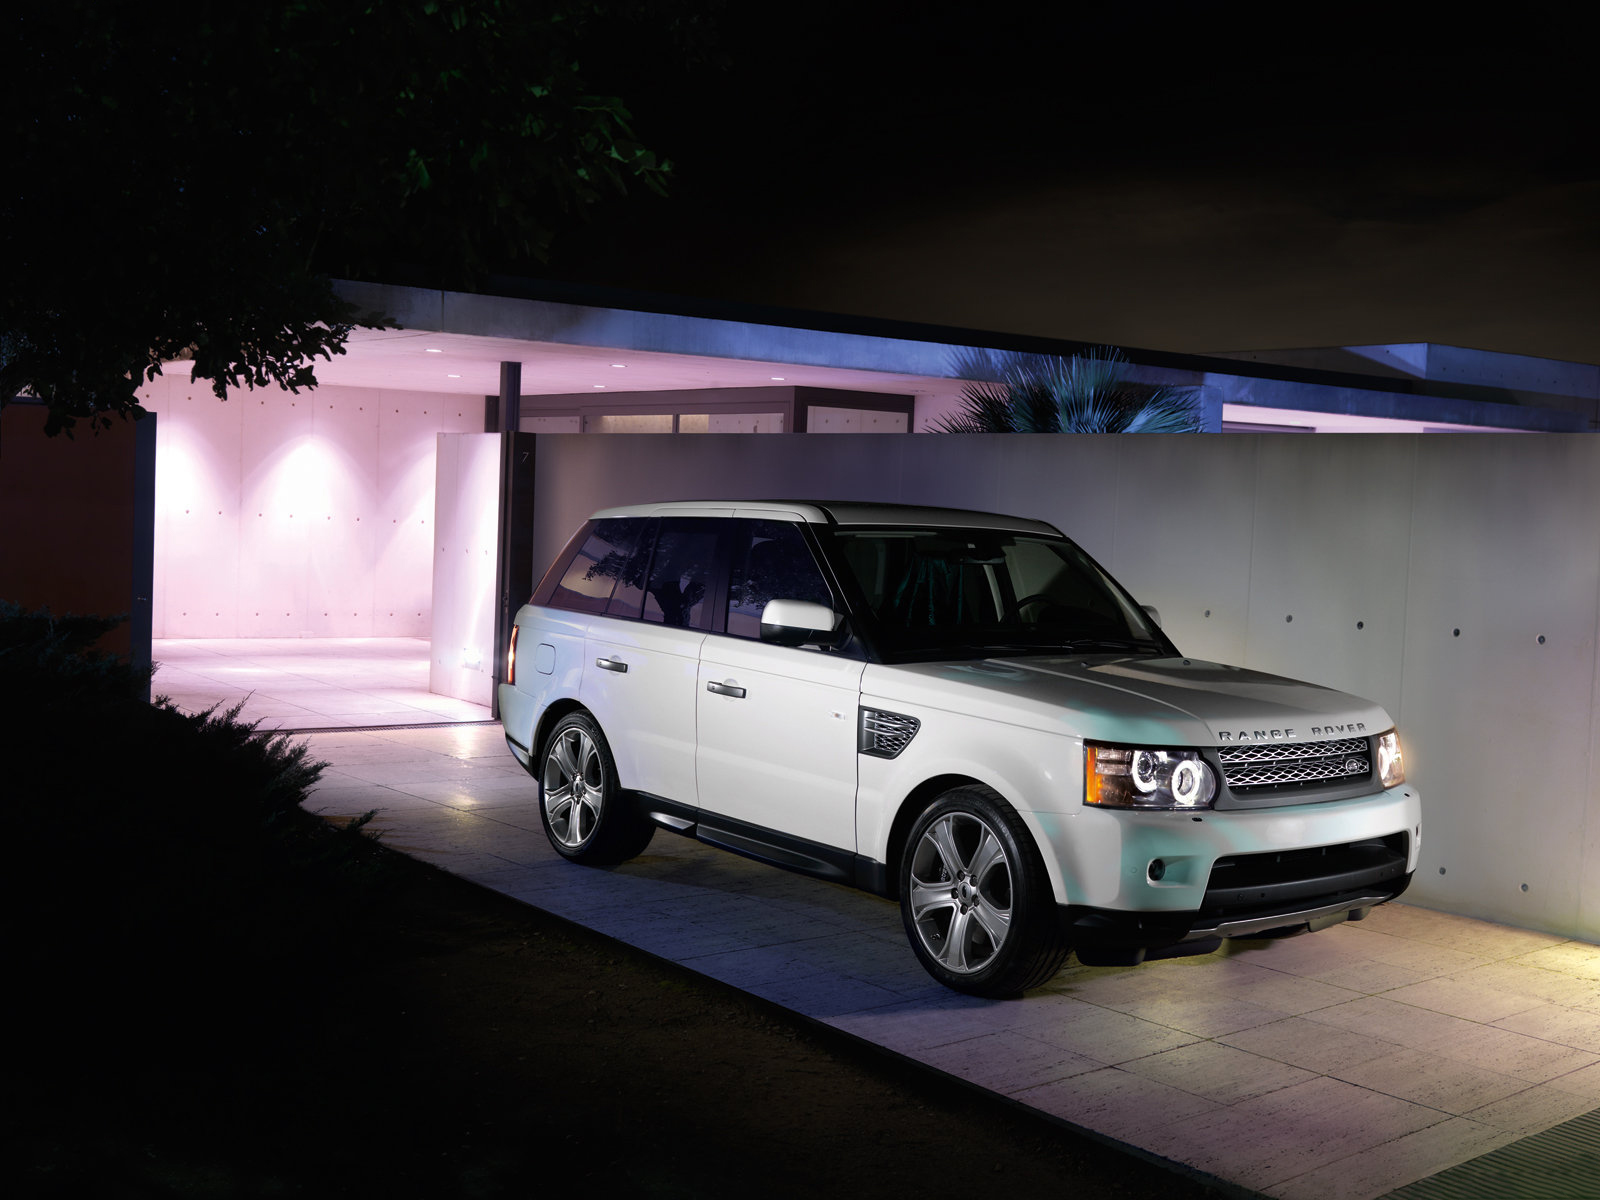 2010 land rover range rover sport front view